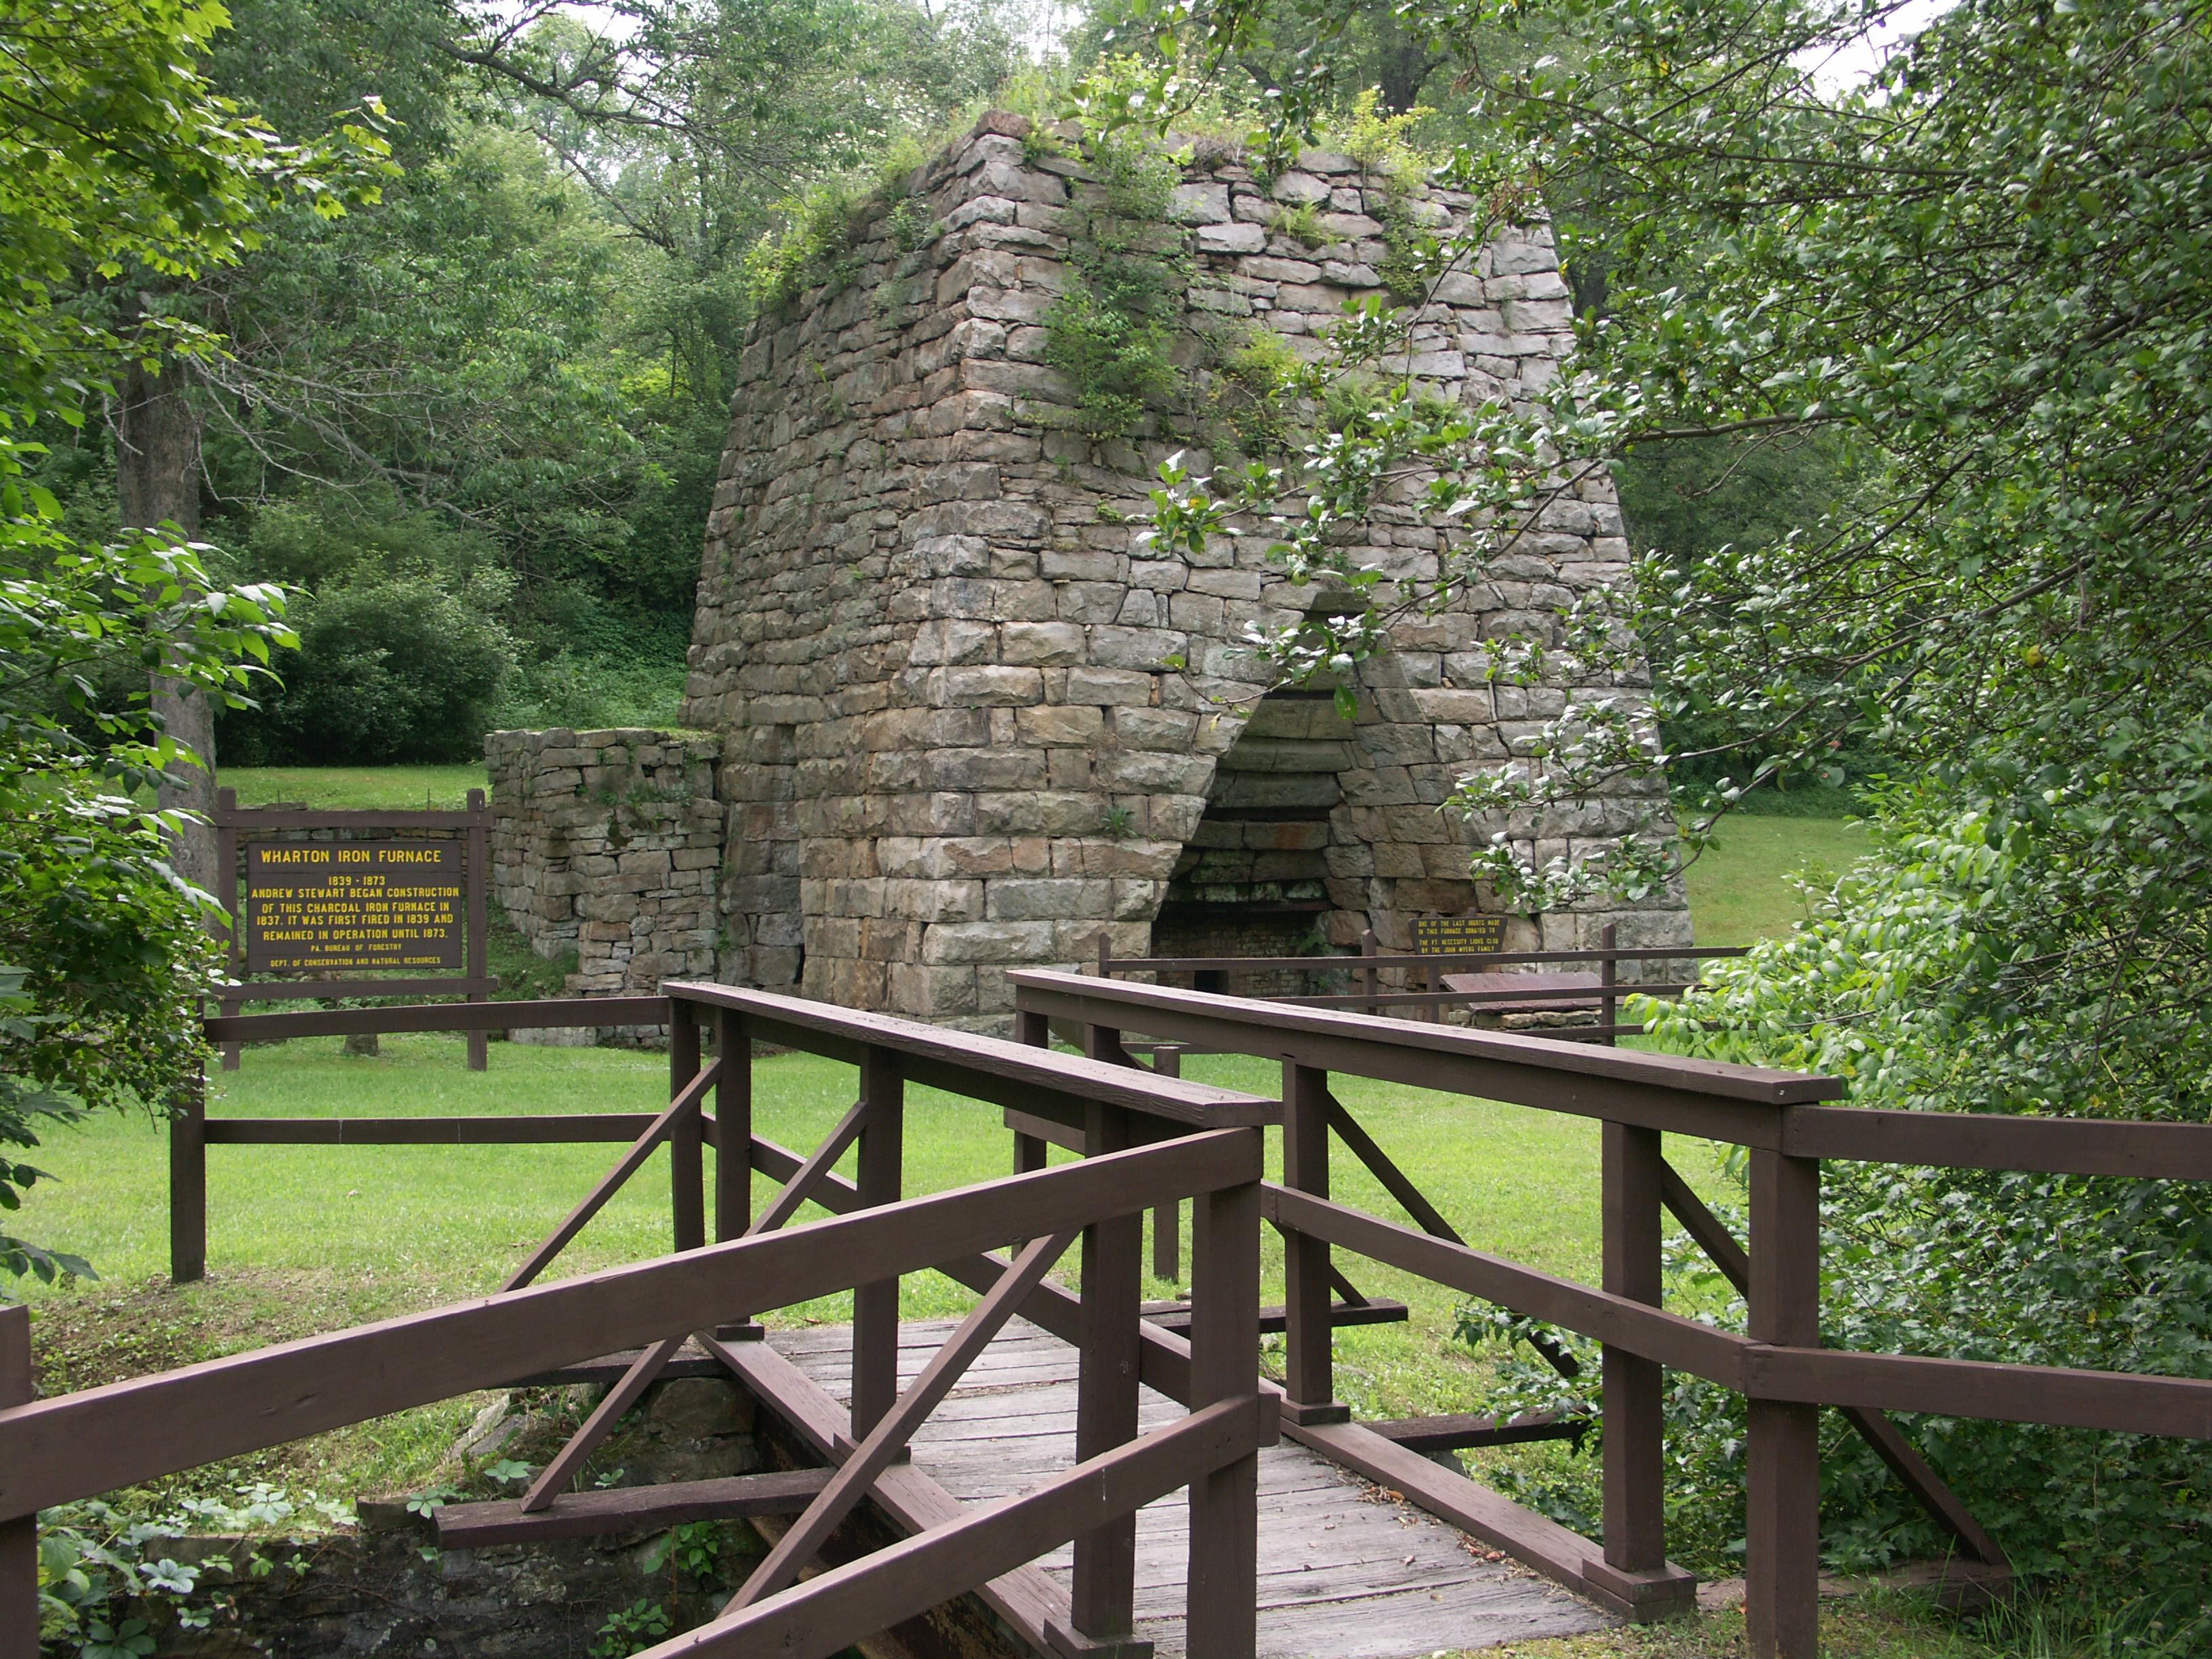 Go back in time when you visit Historic Wharton Furnace